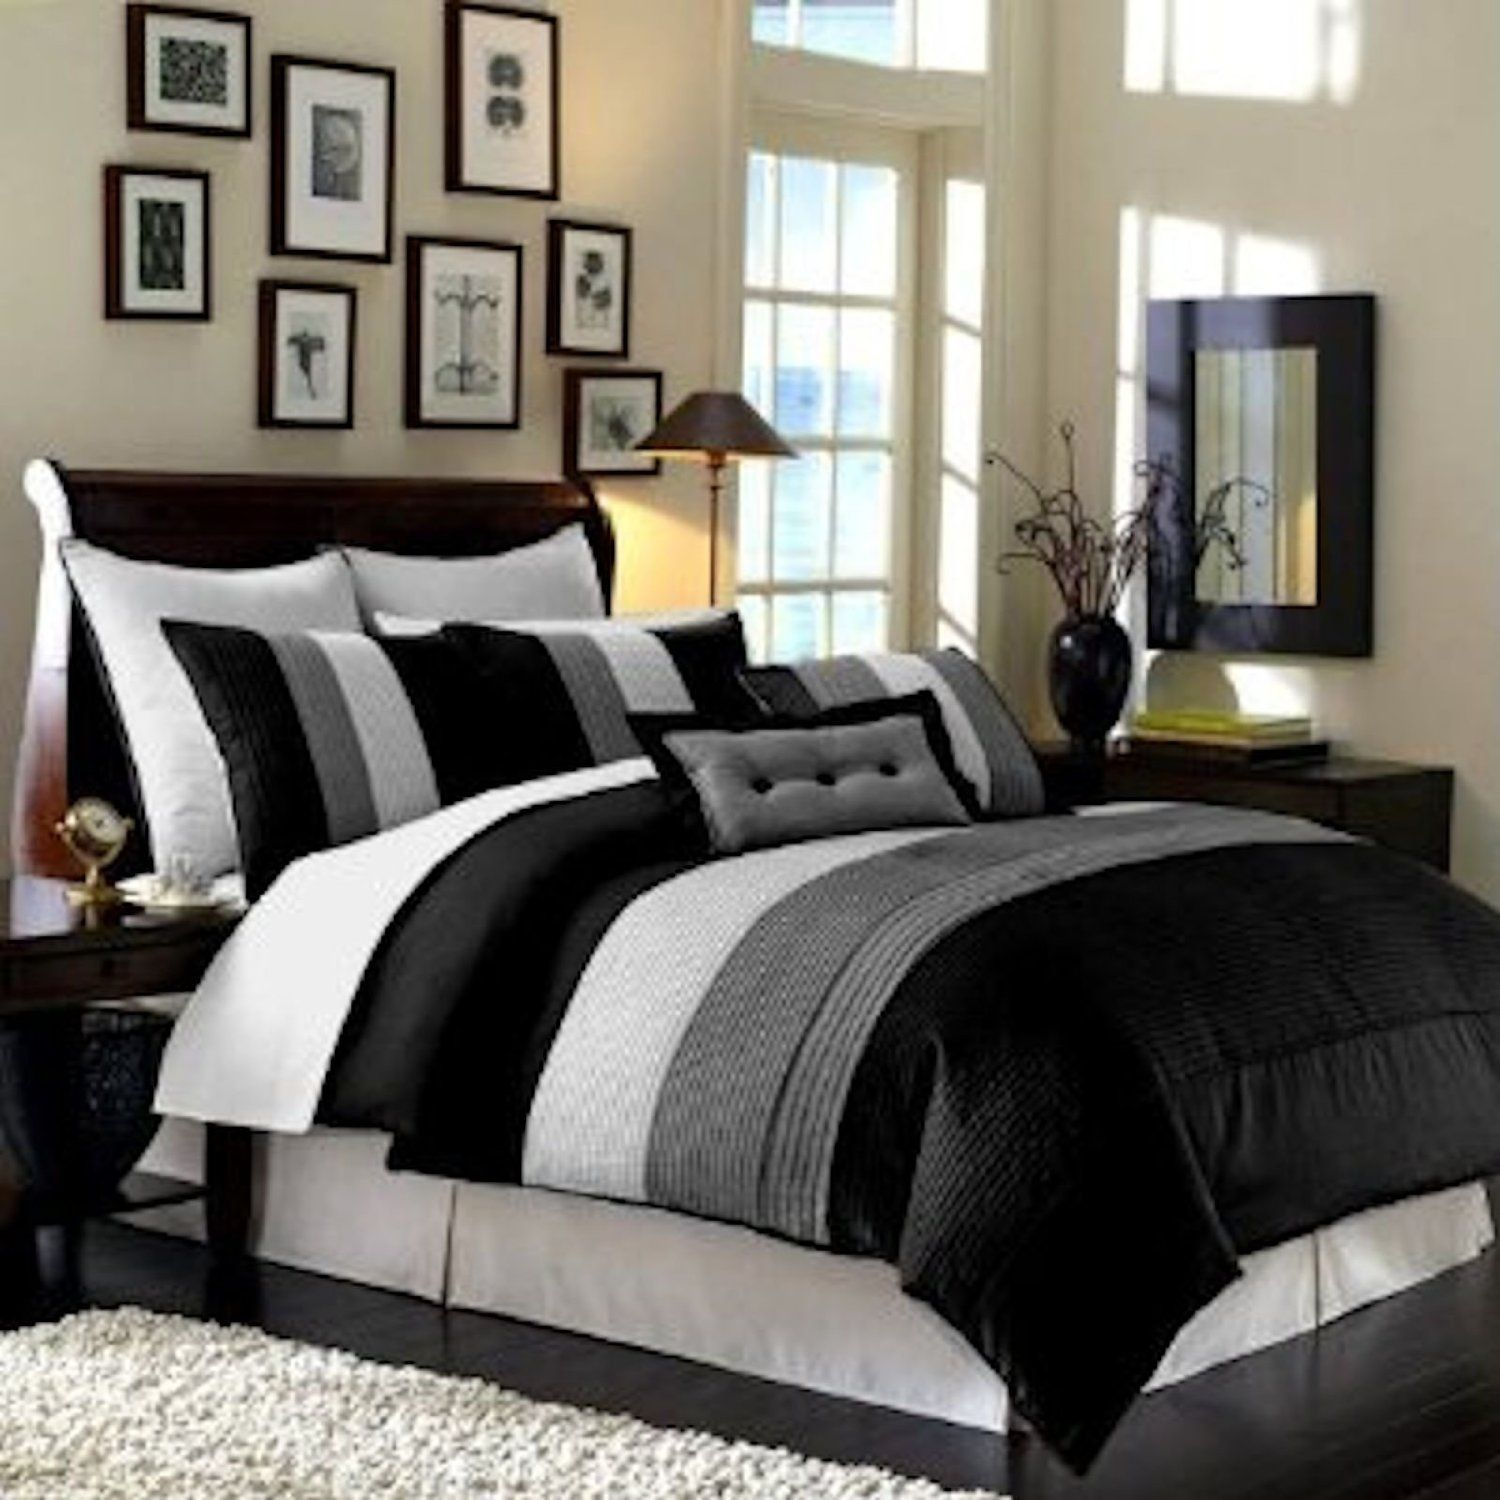 Perfect Way to Create A New Look in Your Bedroom with Awesome ...